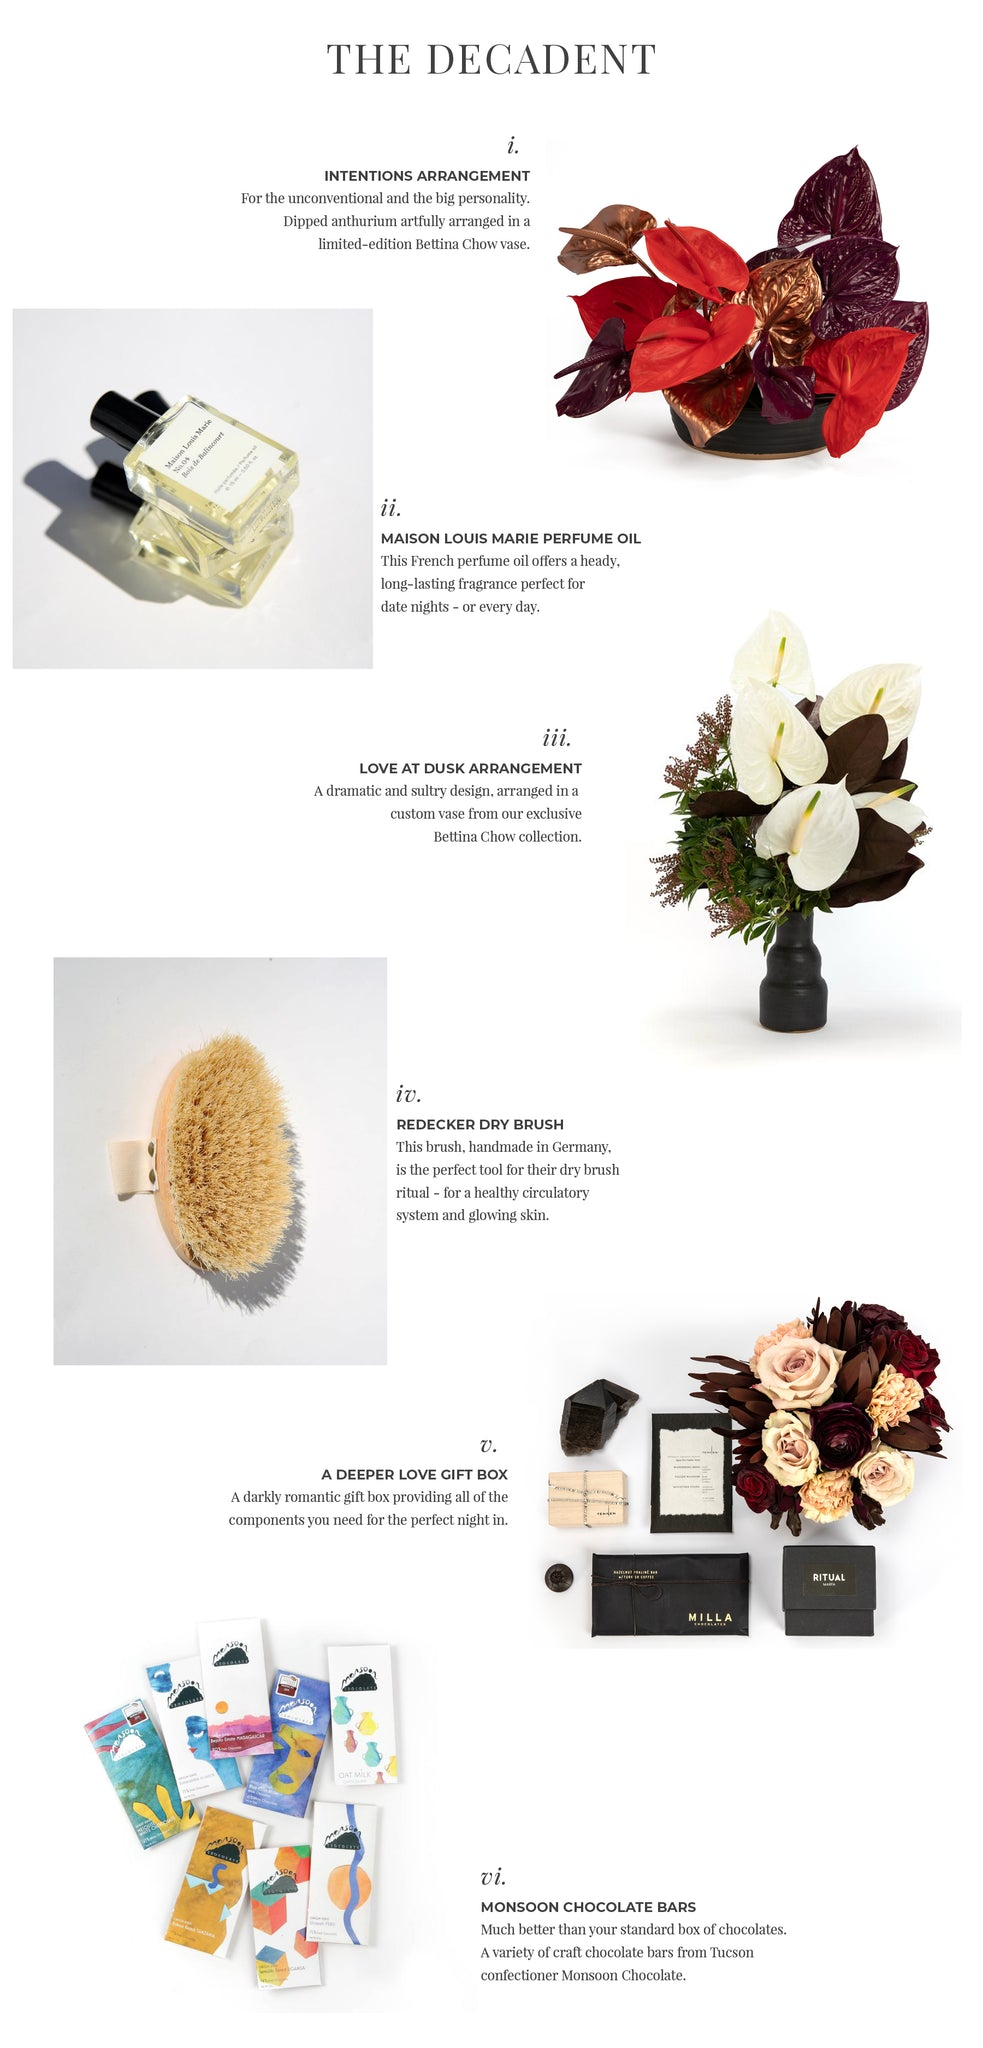 Valentine's Day Gifts Phoenix Florist Camelback Flowershop Gift Guide: The Decadent